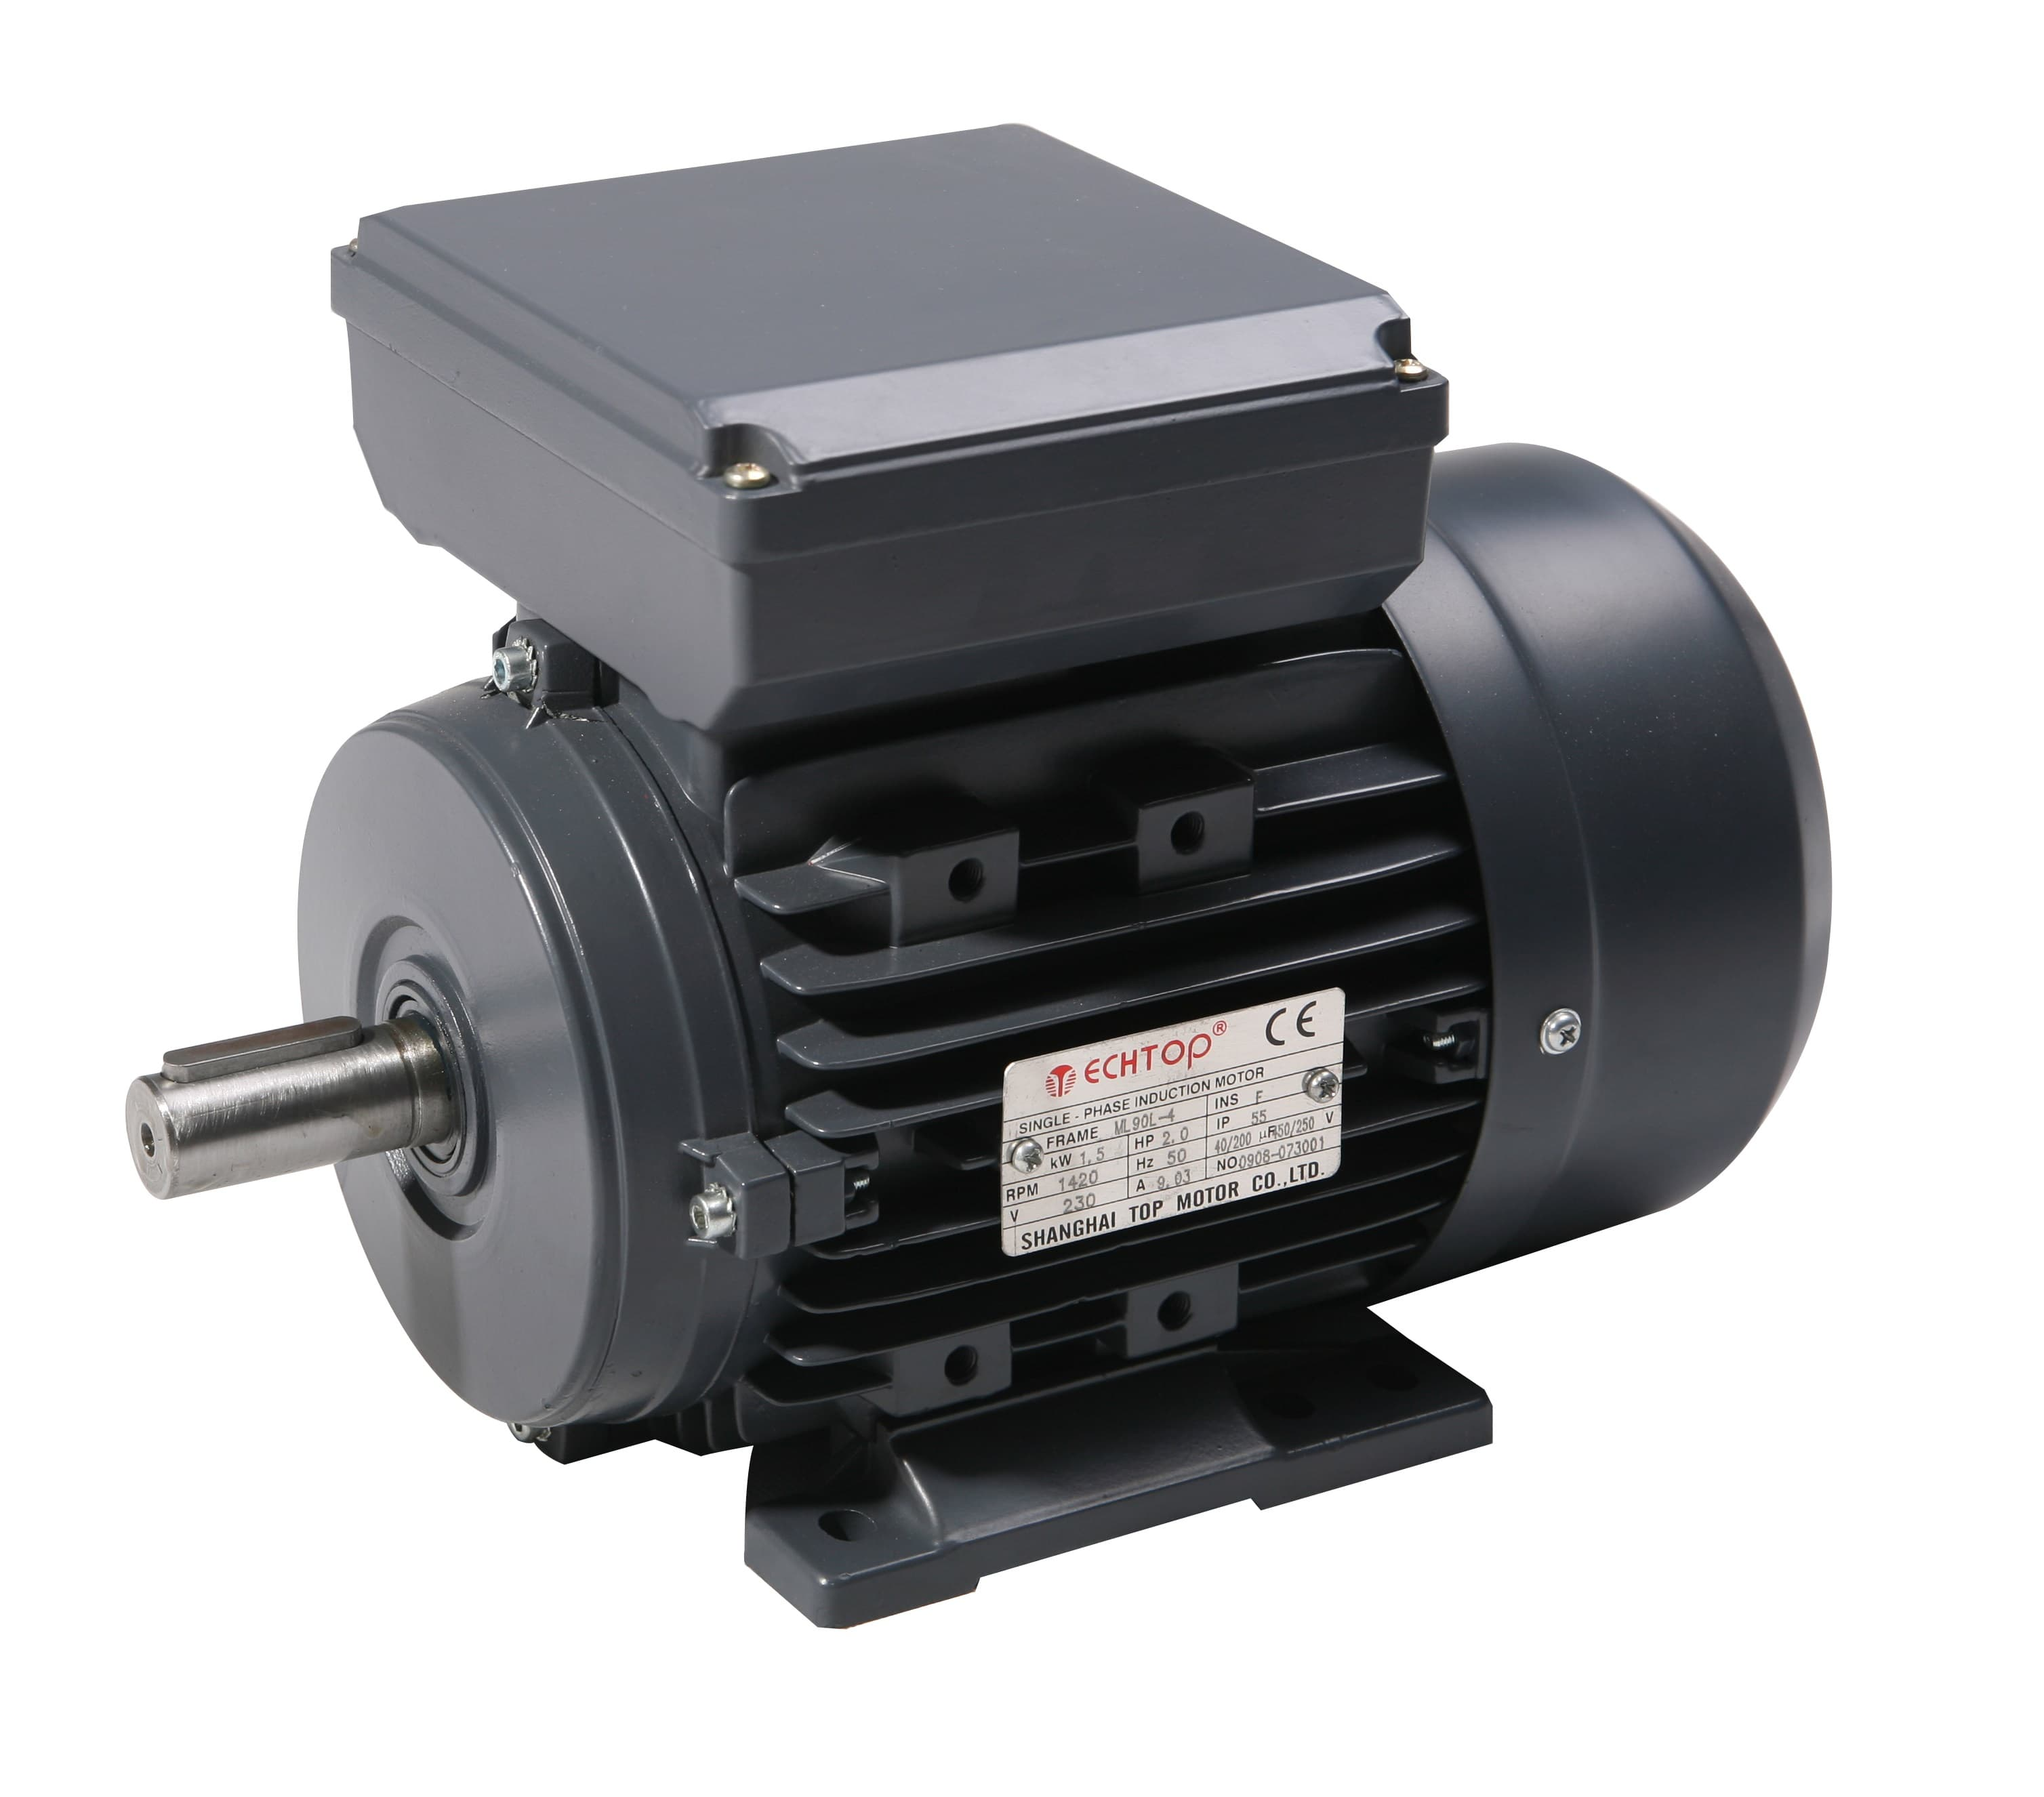 Tec single phase 230v electric motor 4 pole for Electric motor hydraulic pump